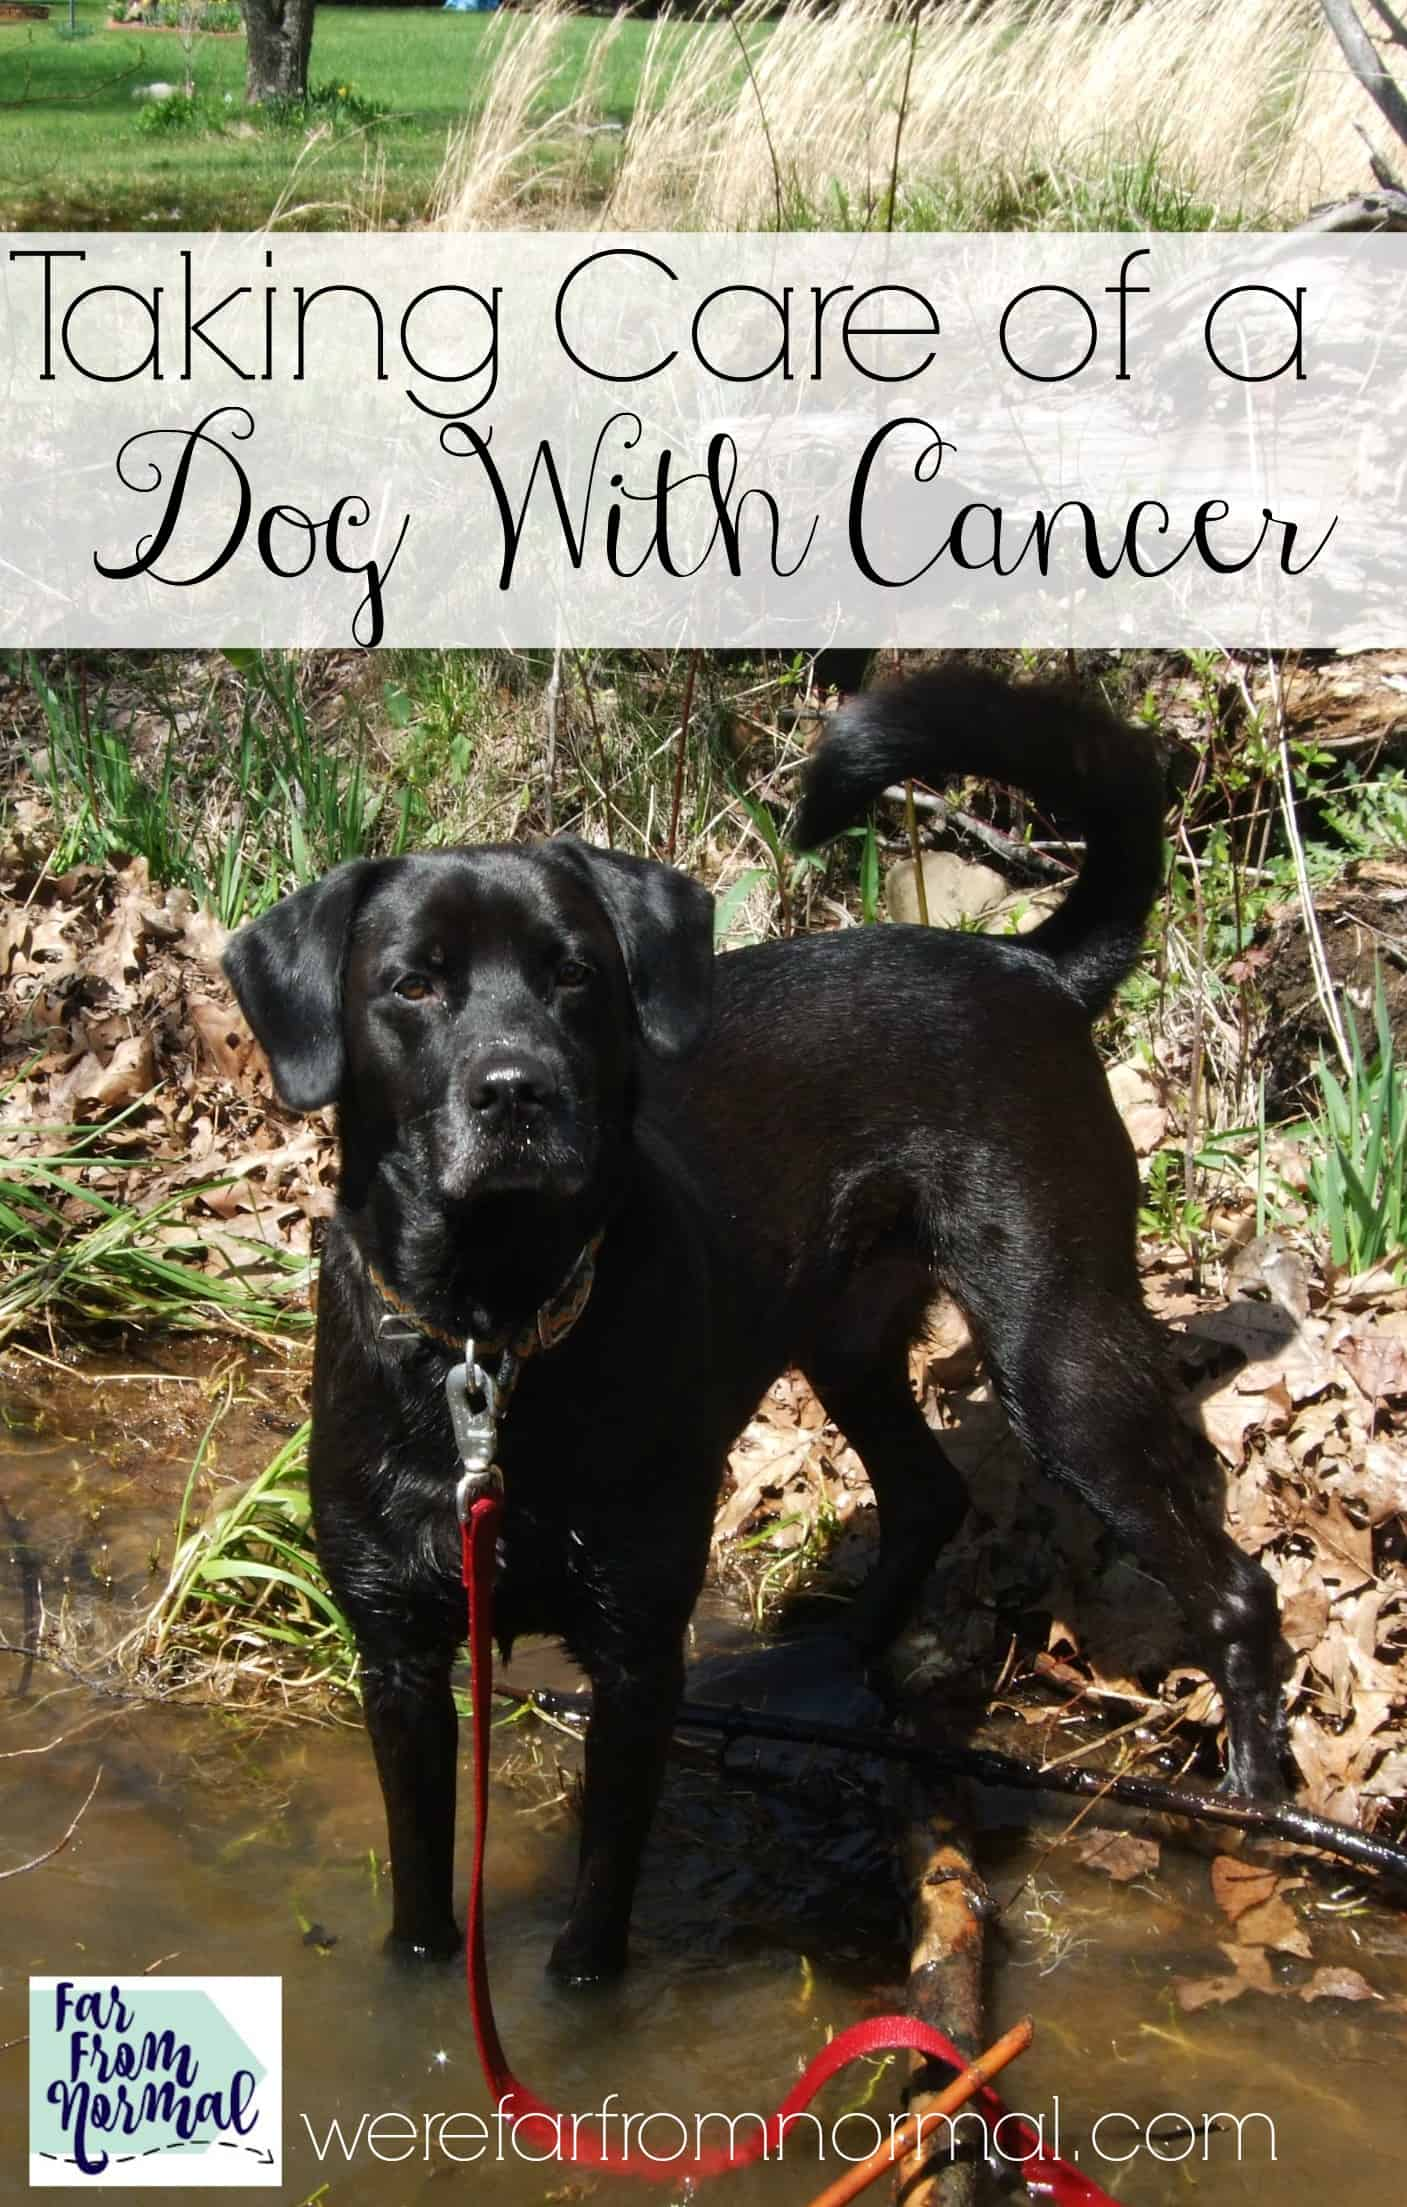 Taking Care of a Dog With Cancer